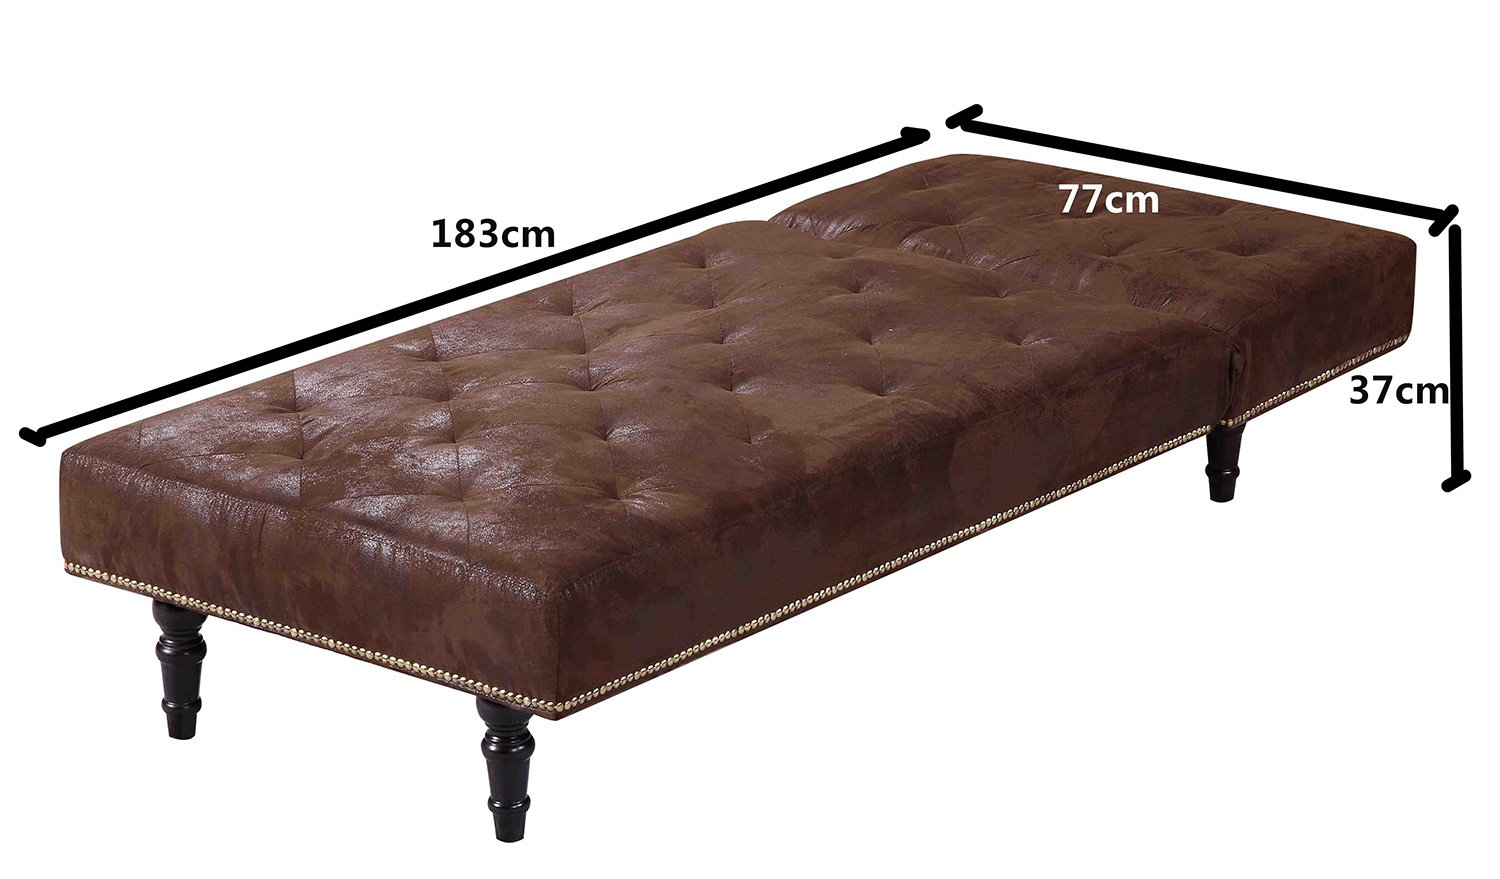 Luxury fabric chaise longue 1 seater sofa bed brown for Chaise longue cheap